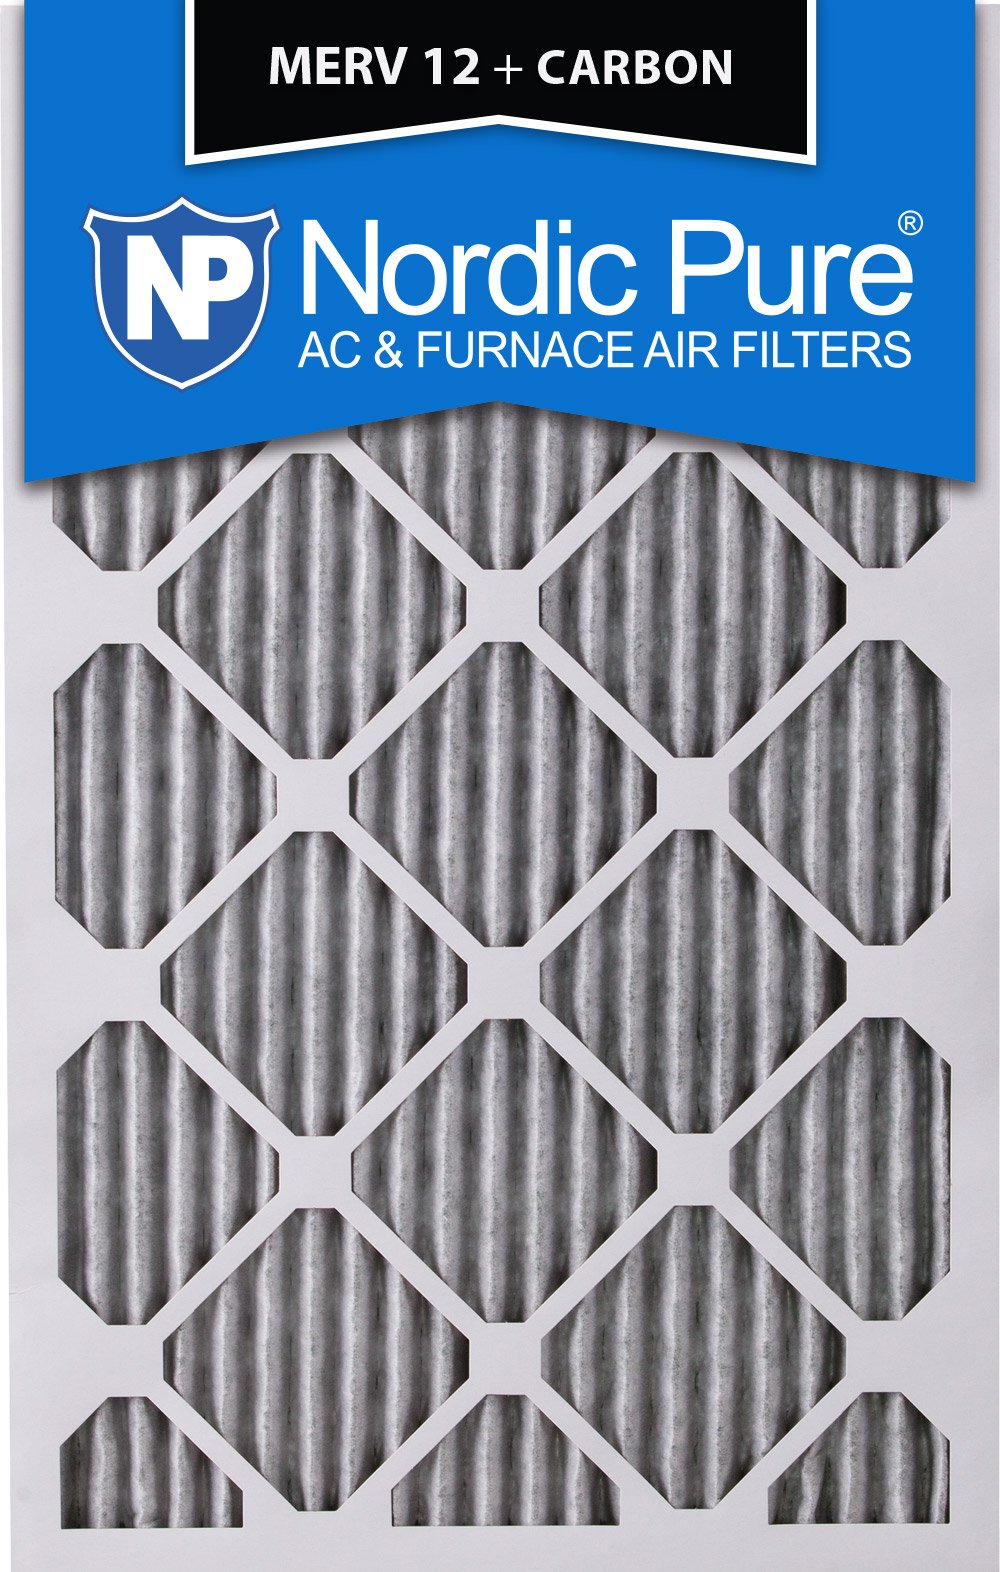 Nordic Pure 16x25x4 (3-5/8 Actual Depth) Pleated MERV 12 Plus Carbon AC Furnace Filter, Box of 1